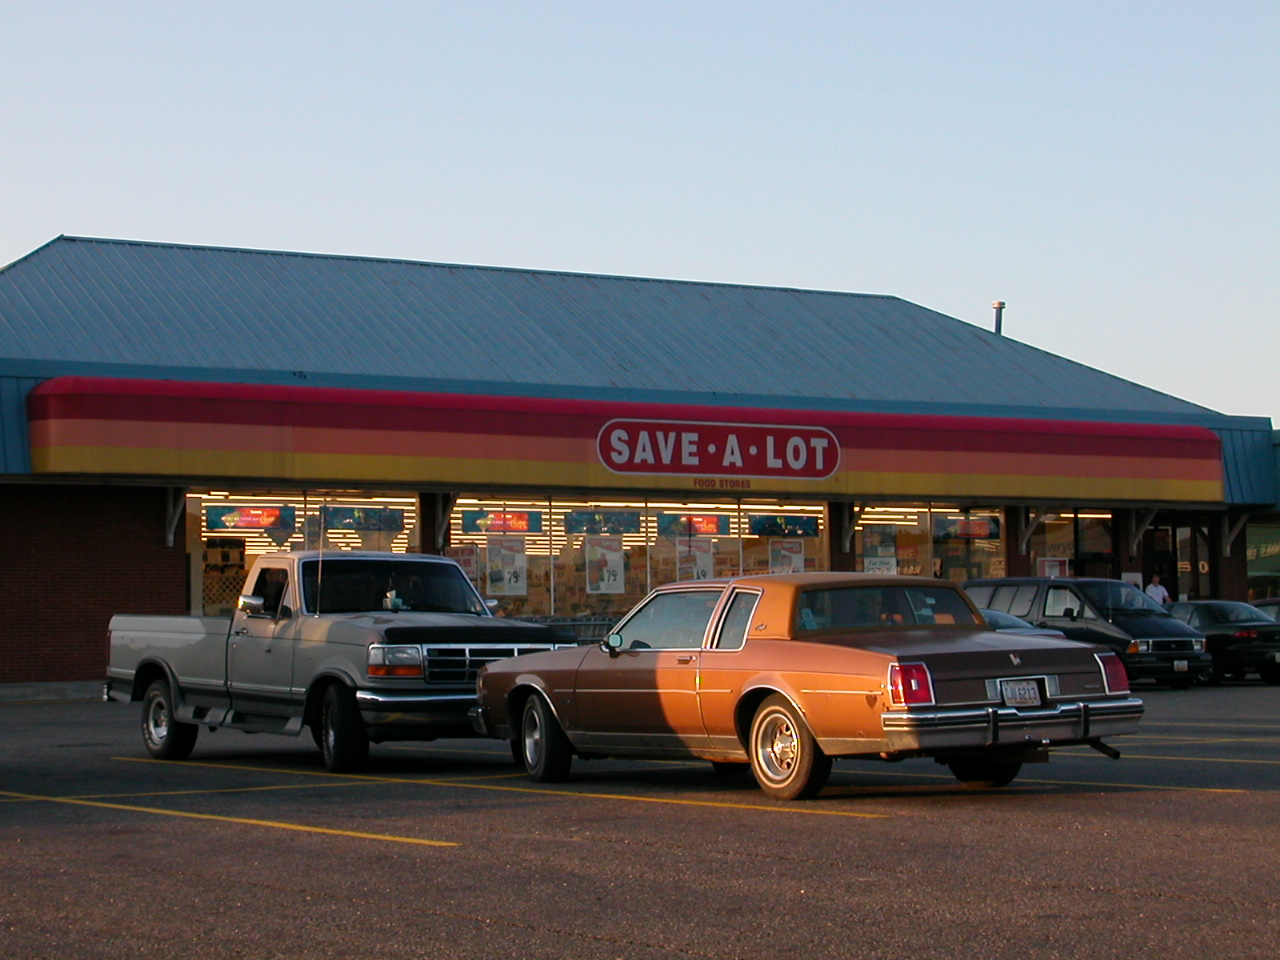 Save-A-Lot - Wikipedia